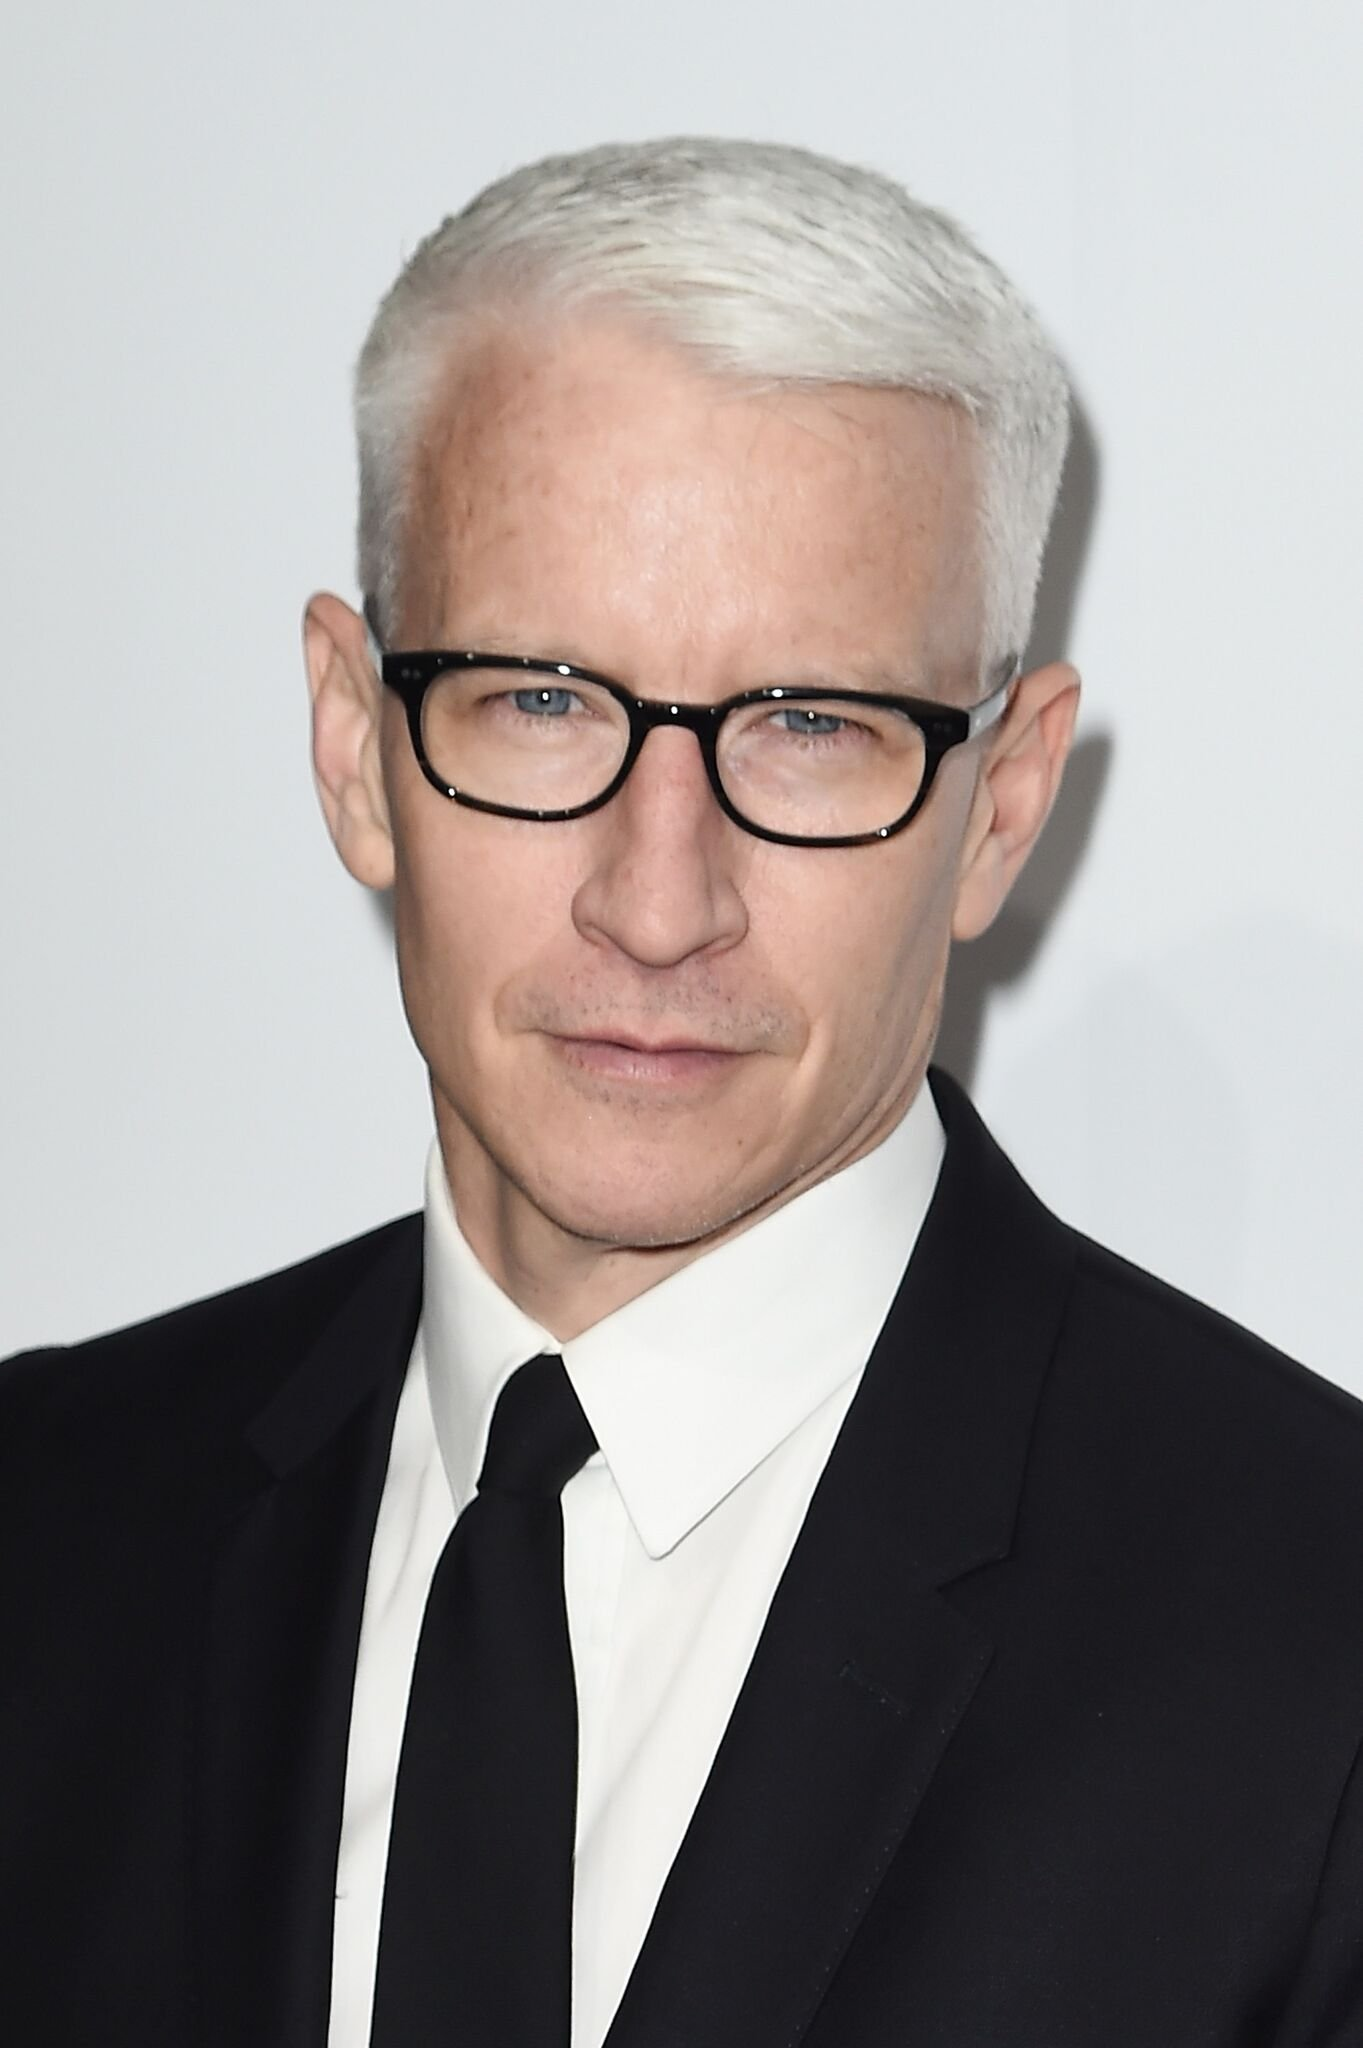 Anderson Cooper attends the Billboard Women in Music 2016 event | Getty Images